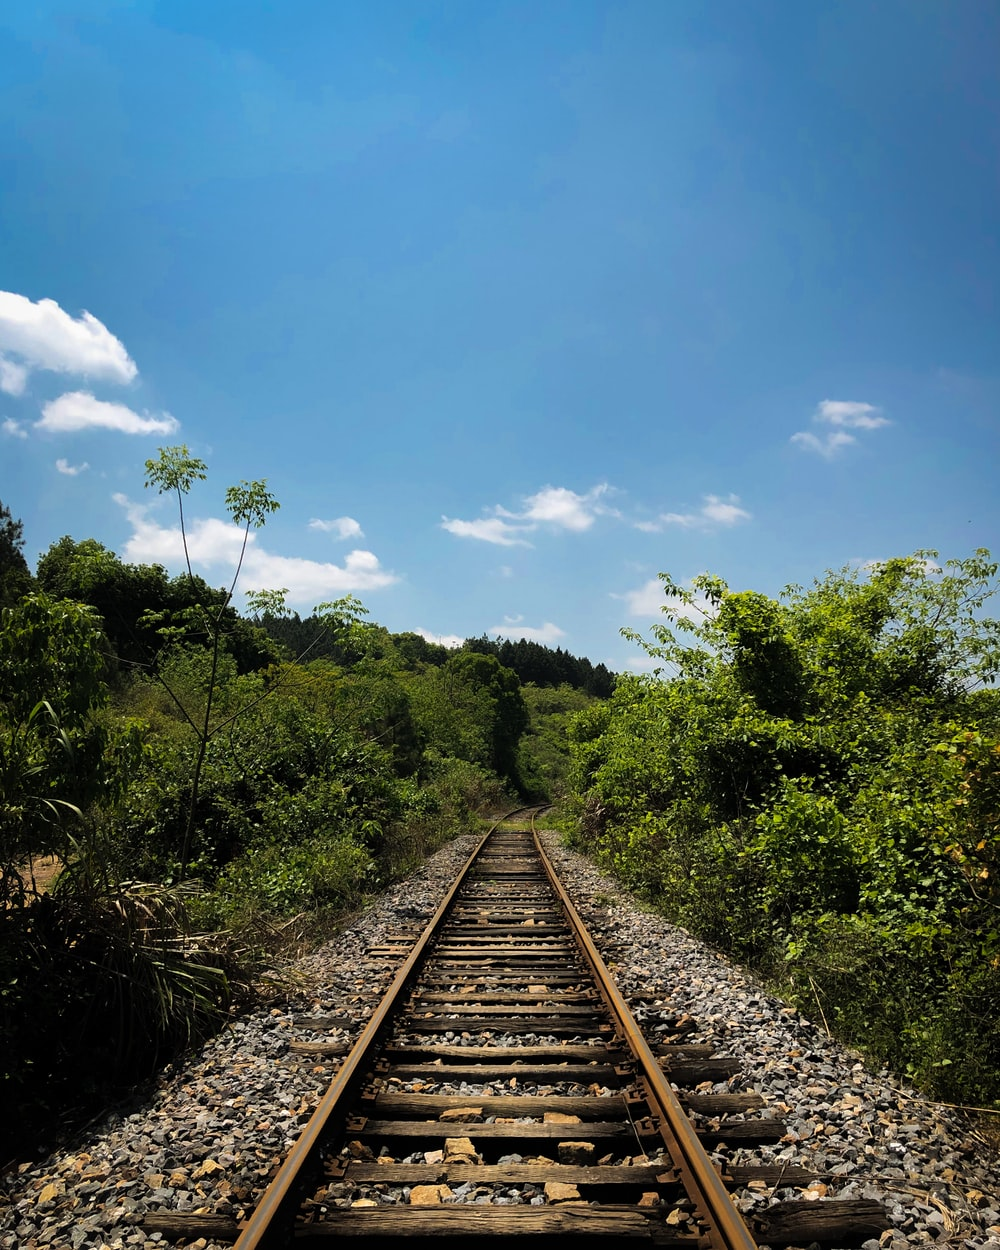 brown metal train rail near green trees under blue sky and white clouds during daytime